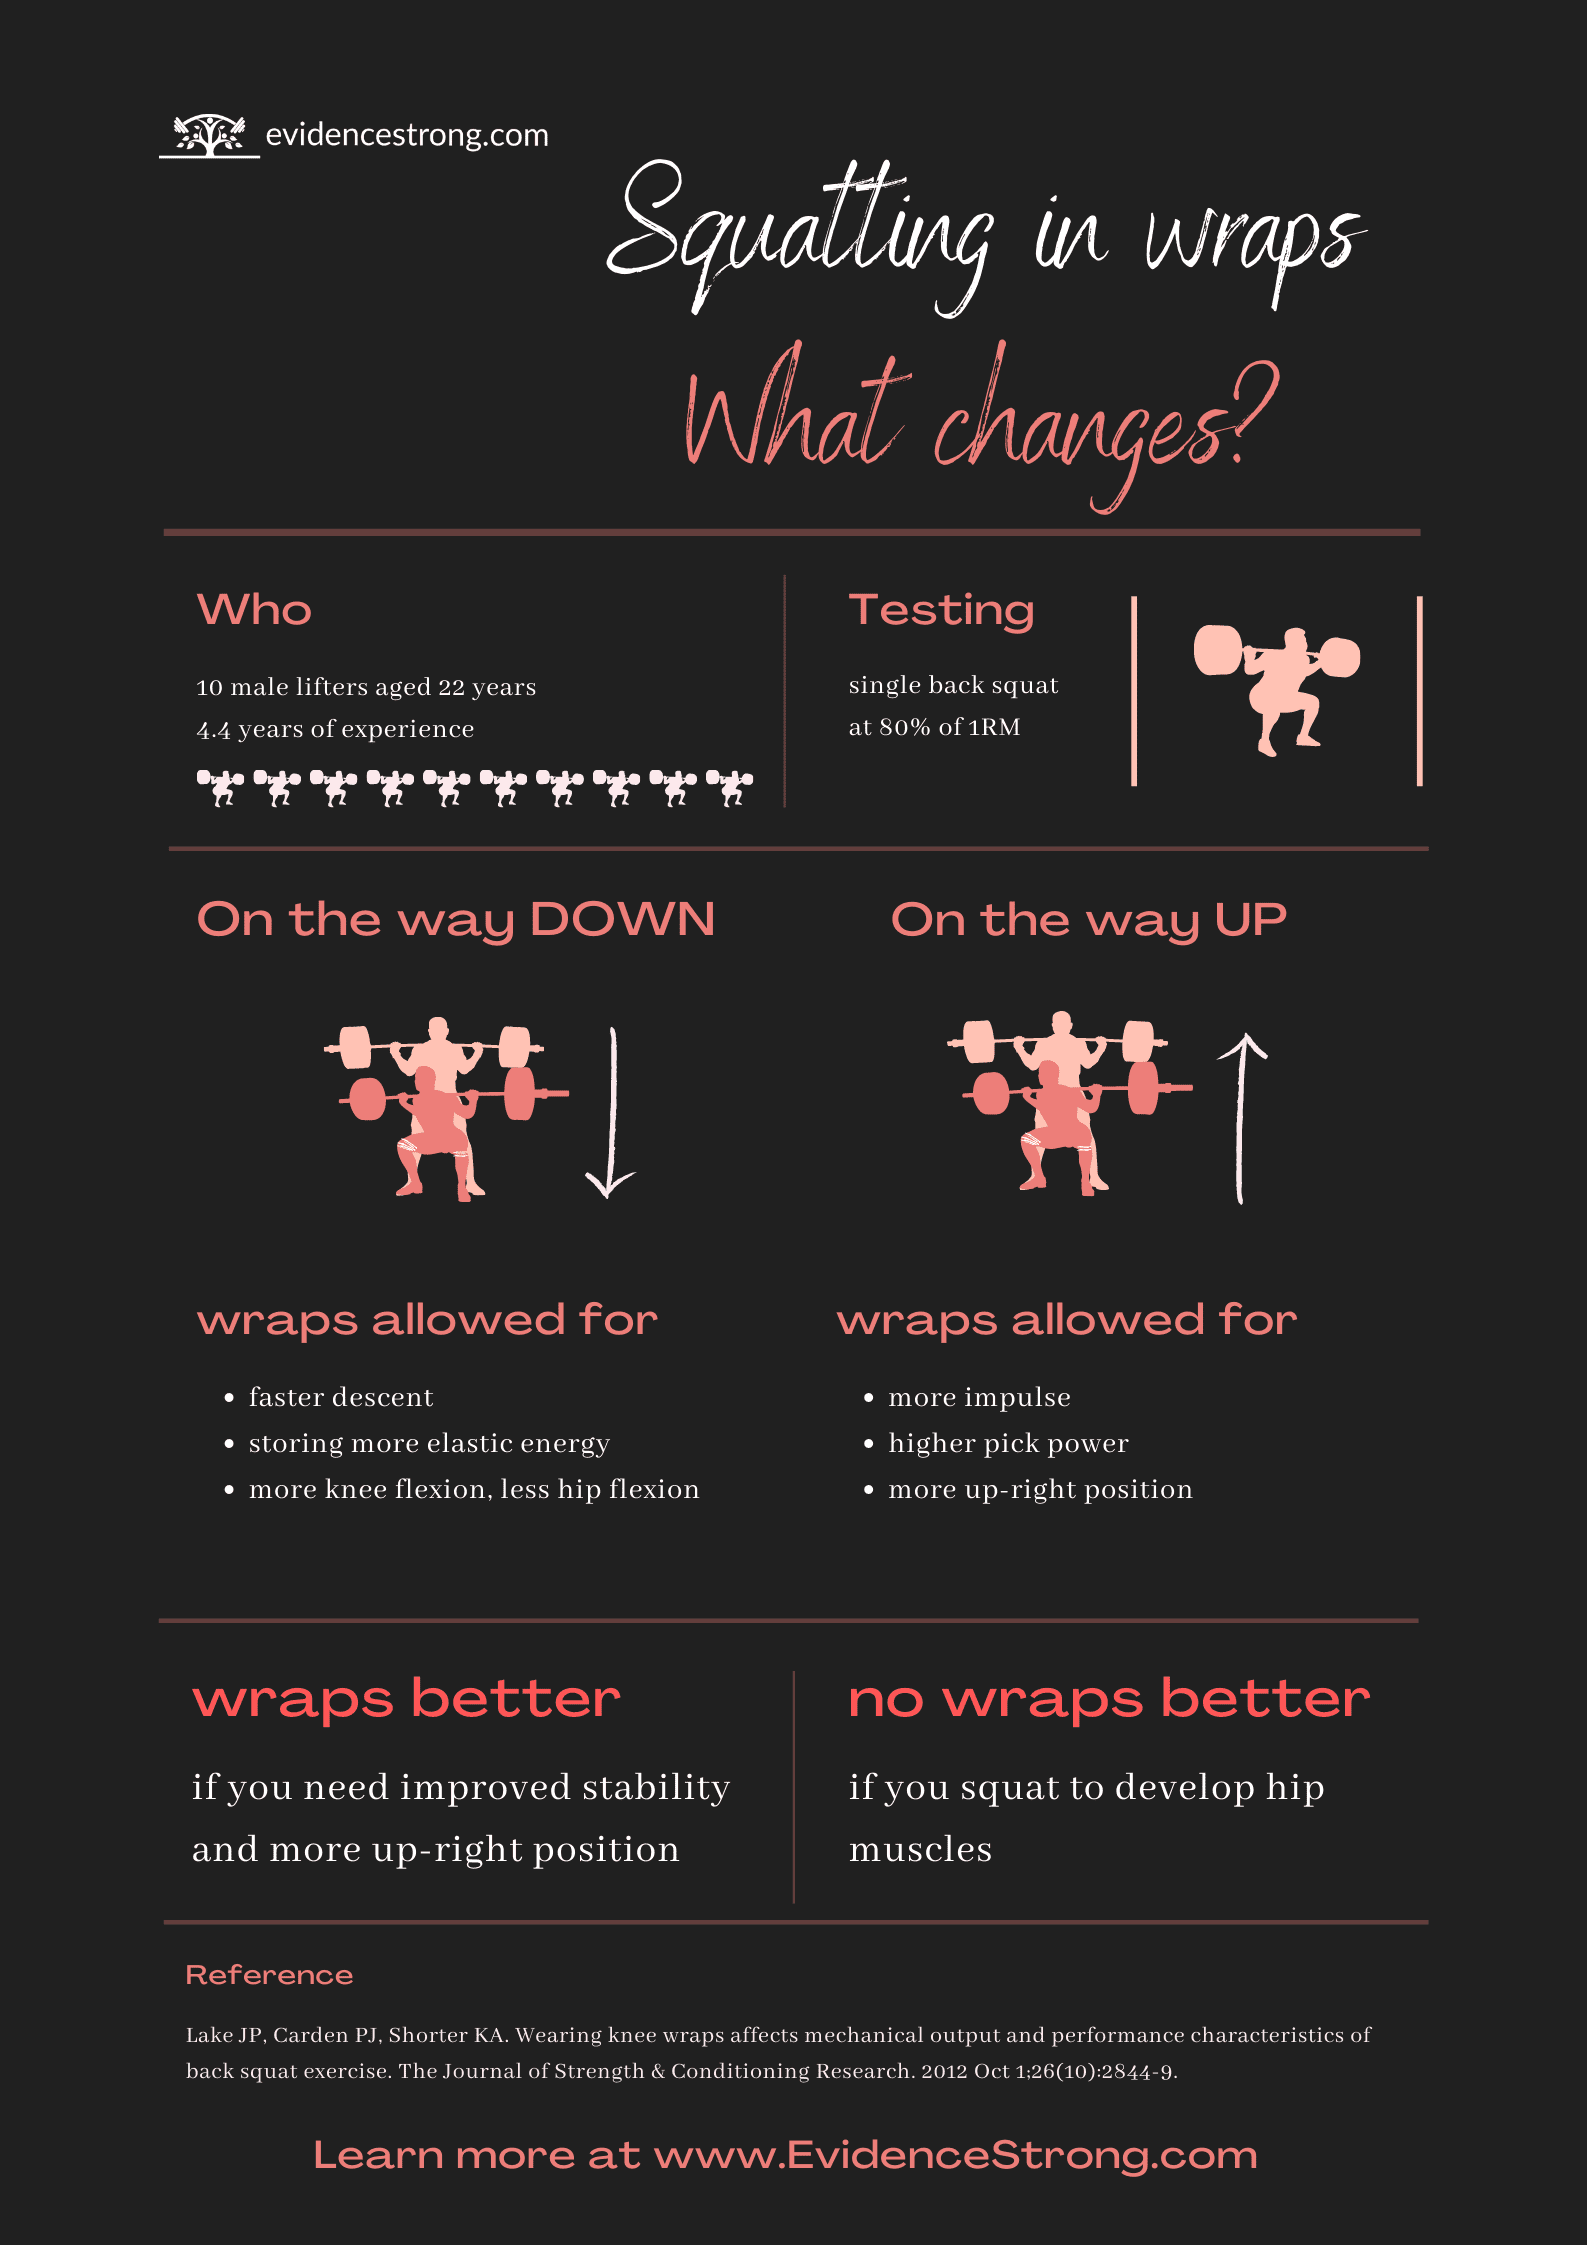 Squatting in wraps What changes Infographic